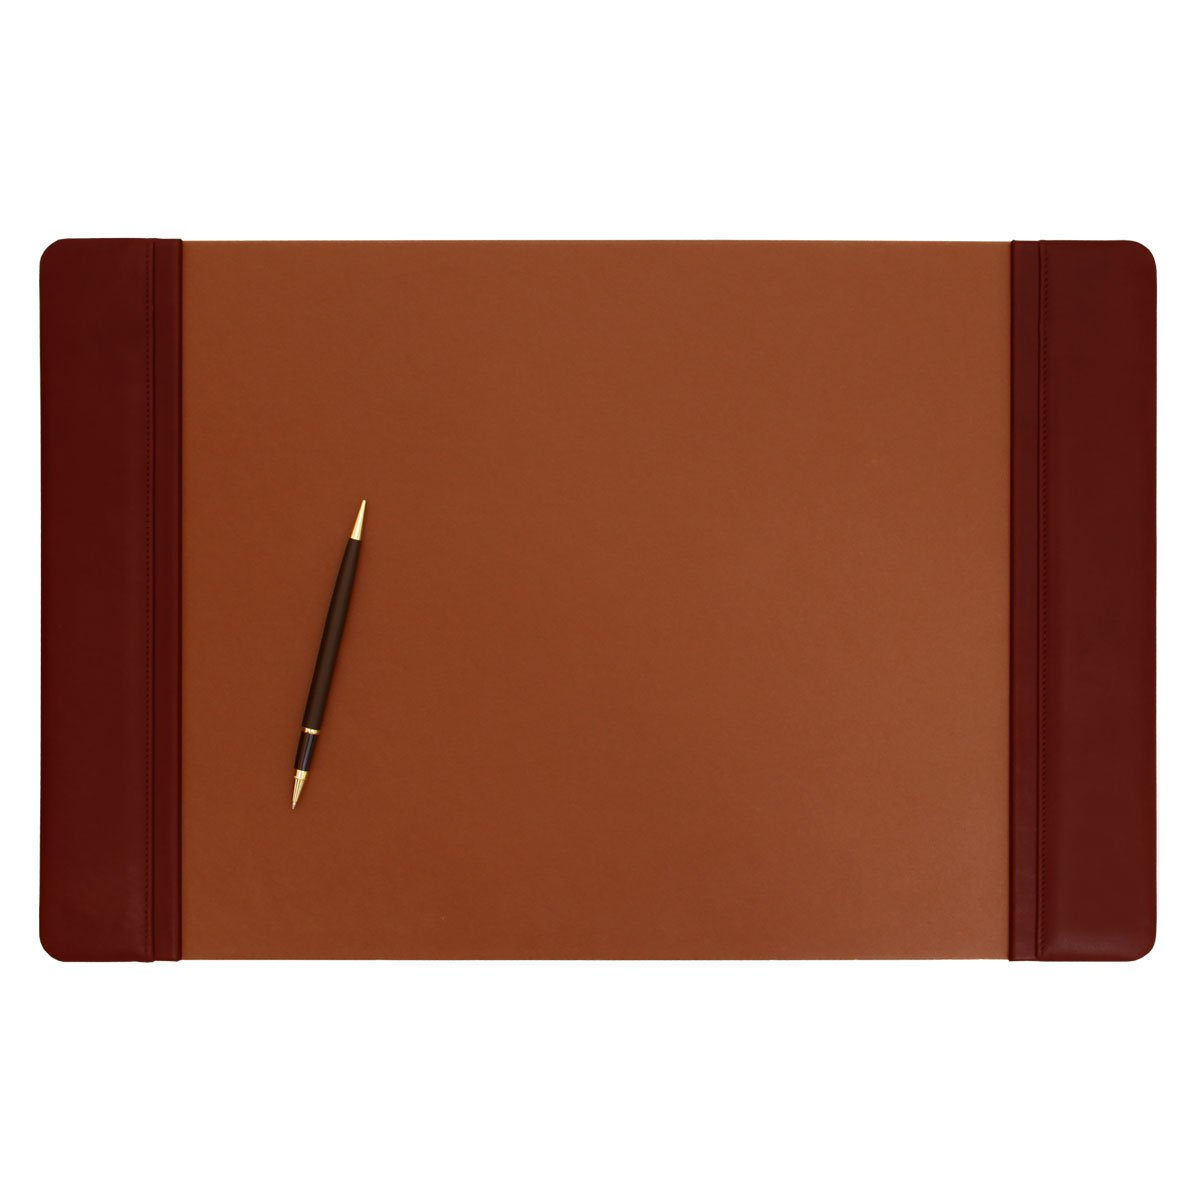 Dacasso Leather Side-Rail Desk Pad, Mocha, 22 x 14-Inch P3028